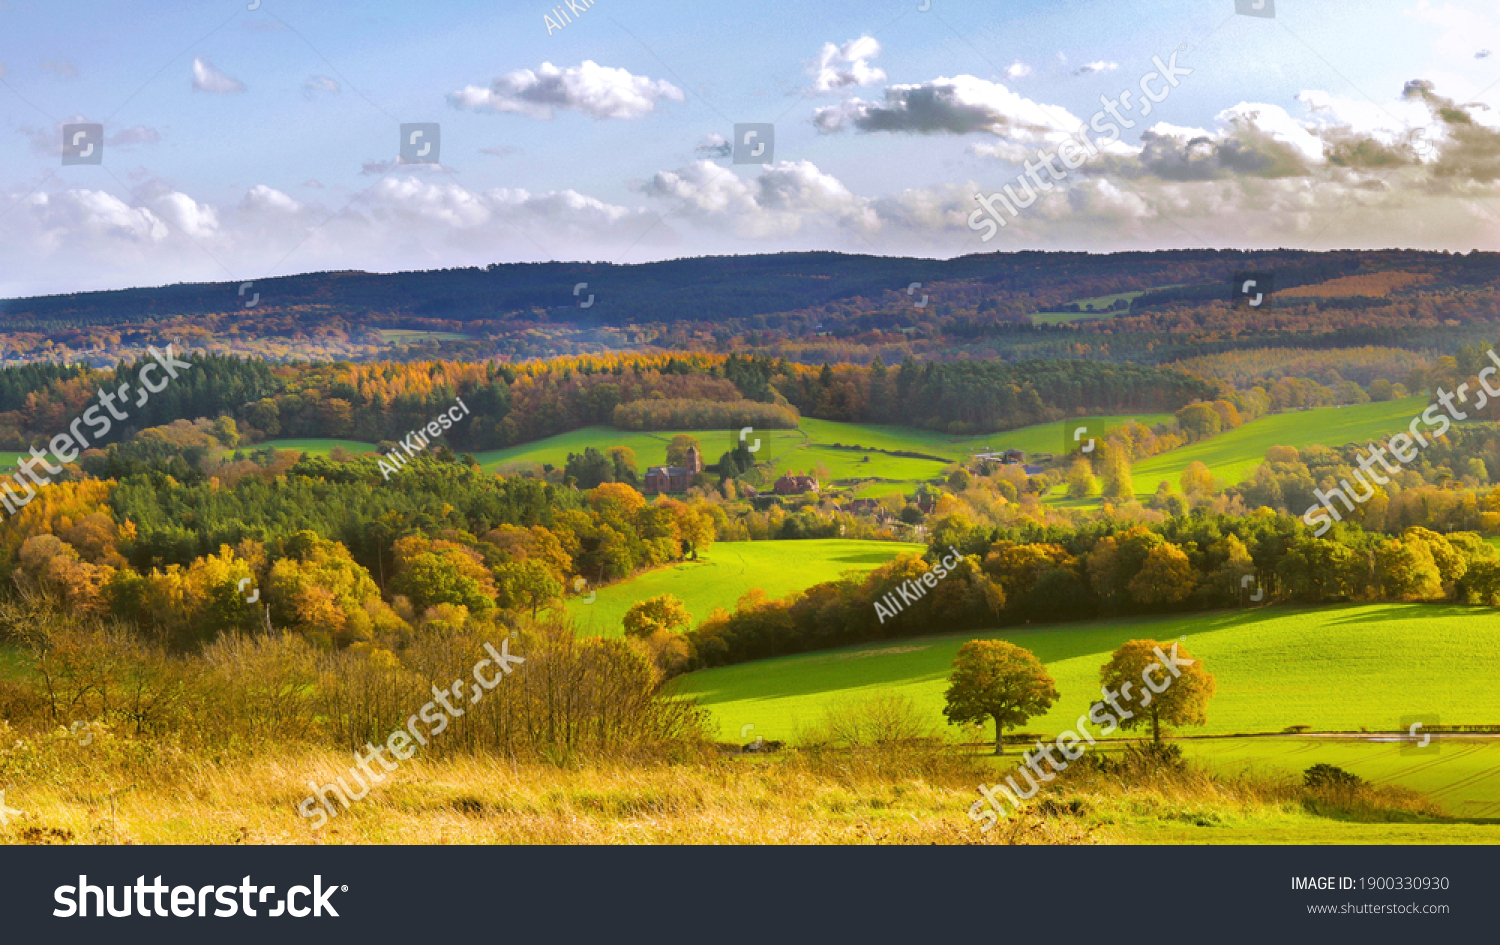 The beautiful colours of Surrey Hills #1900330930